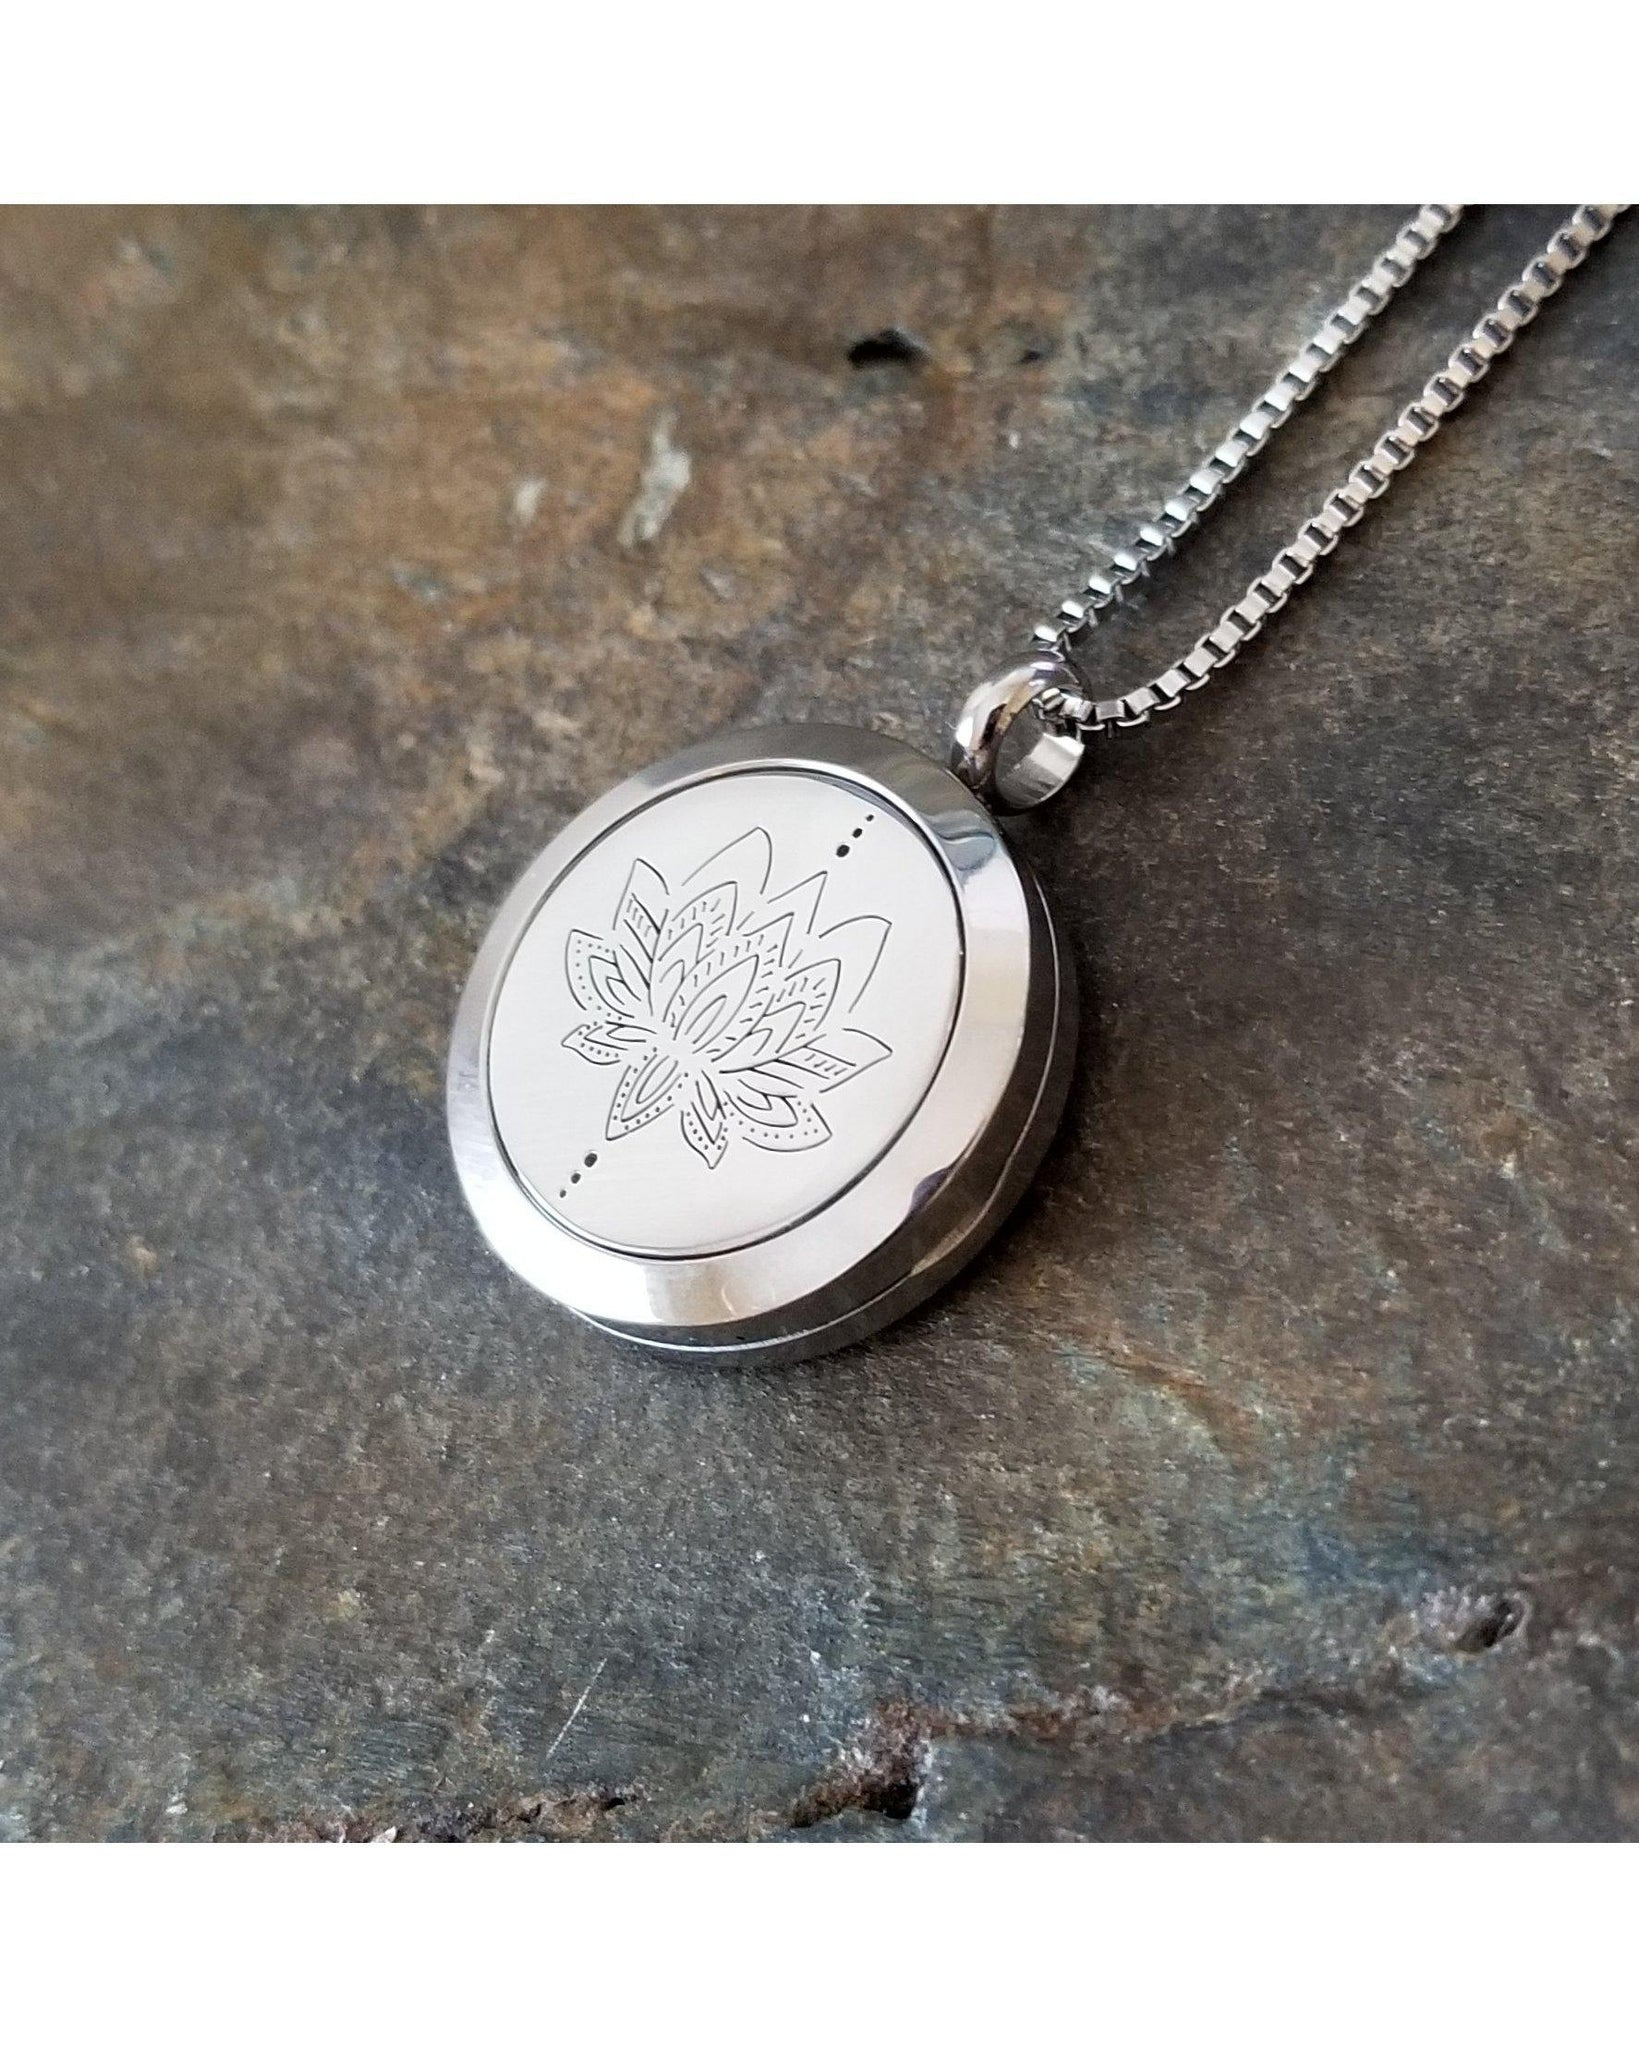 EE Exclusive **Lotus** 25mm Silver 316L Stainless Steel Essential Oil Aromatherapy Locket Diffuser Pendant Necklace S024 - Essentially Elegant